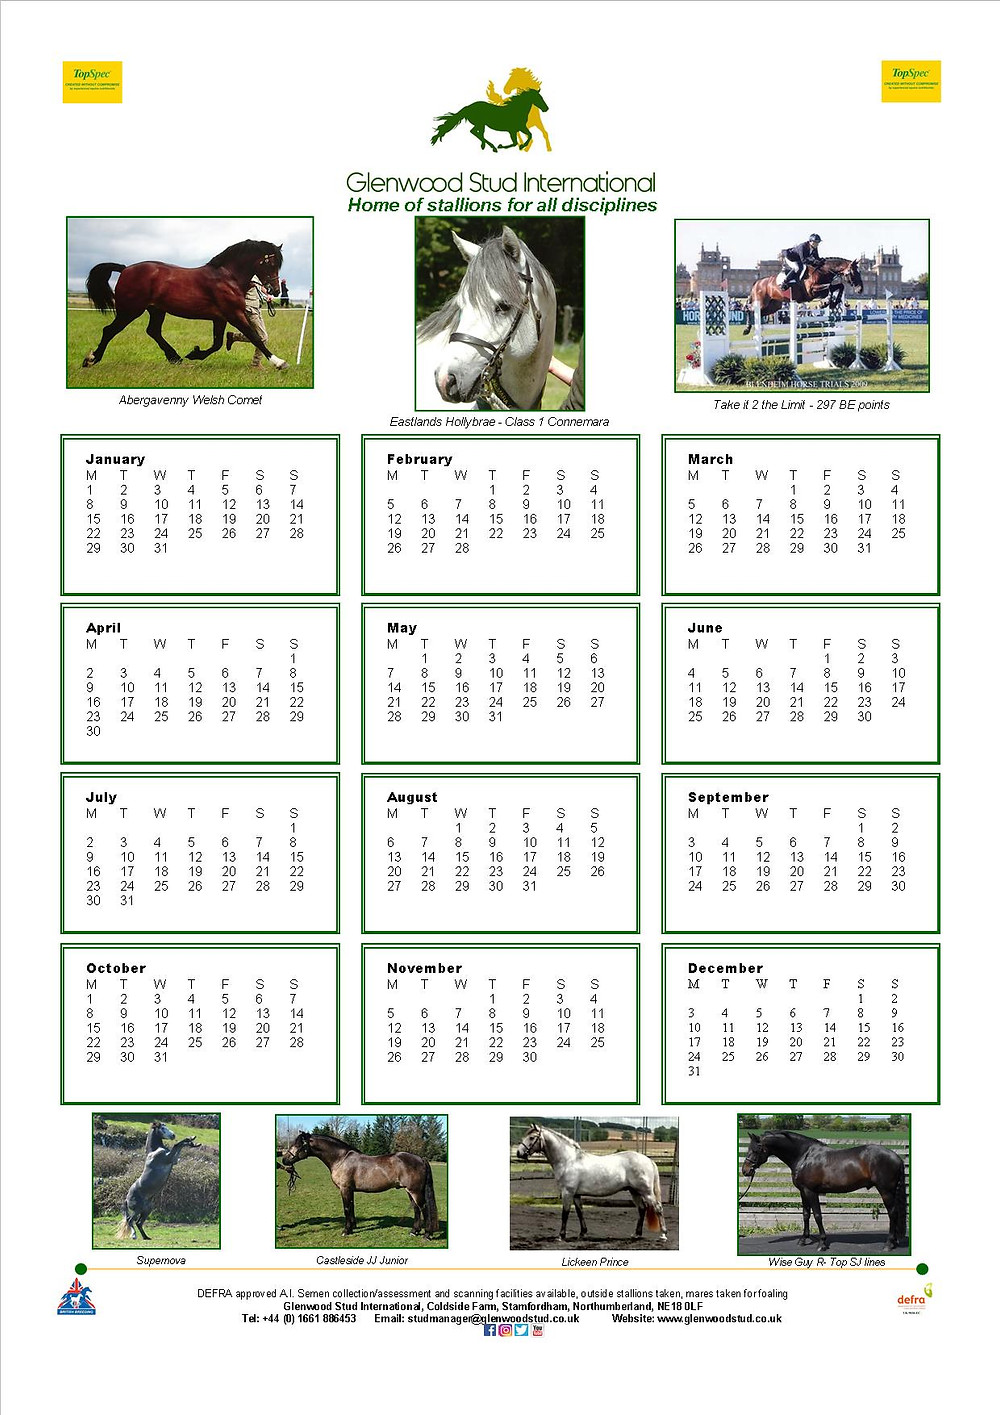 Glenwood Stud 2018 calendar can be downloaded from our 'Downloadable Forms' page